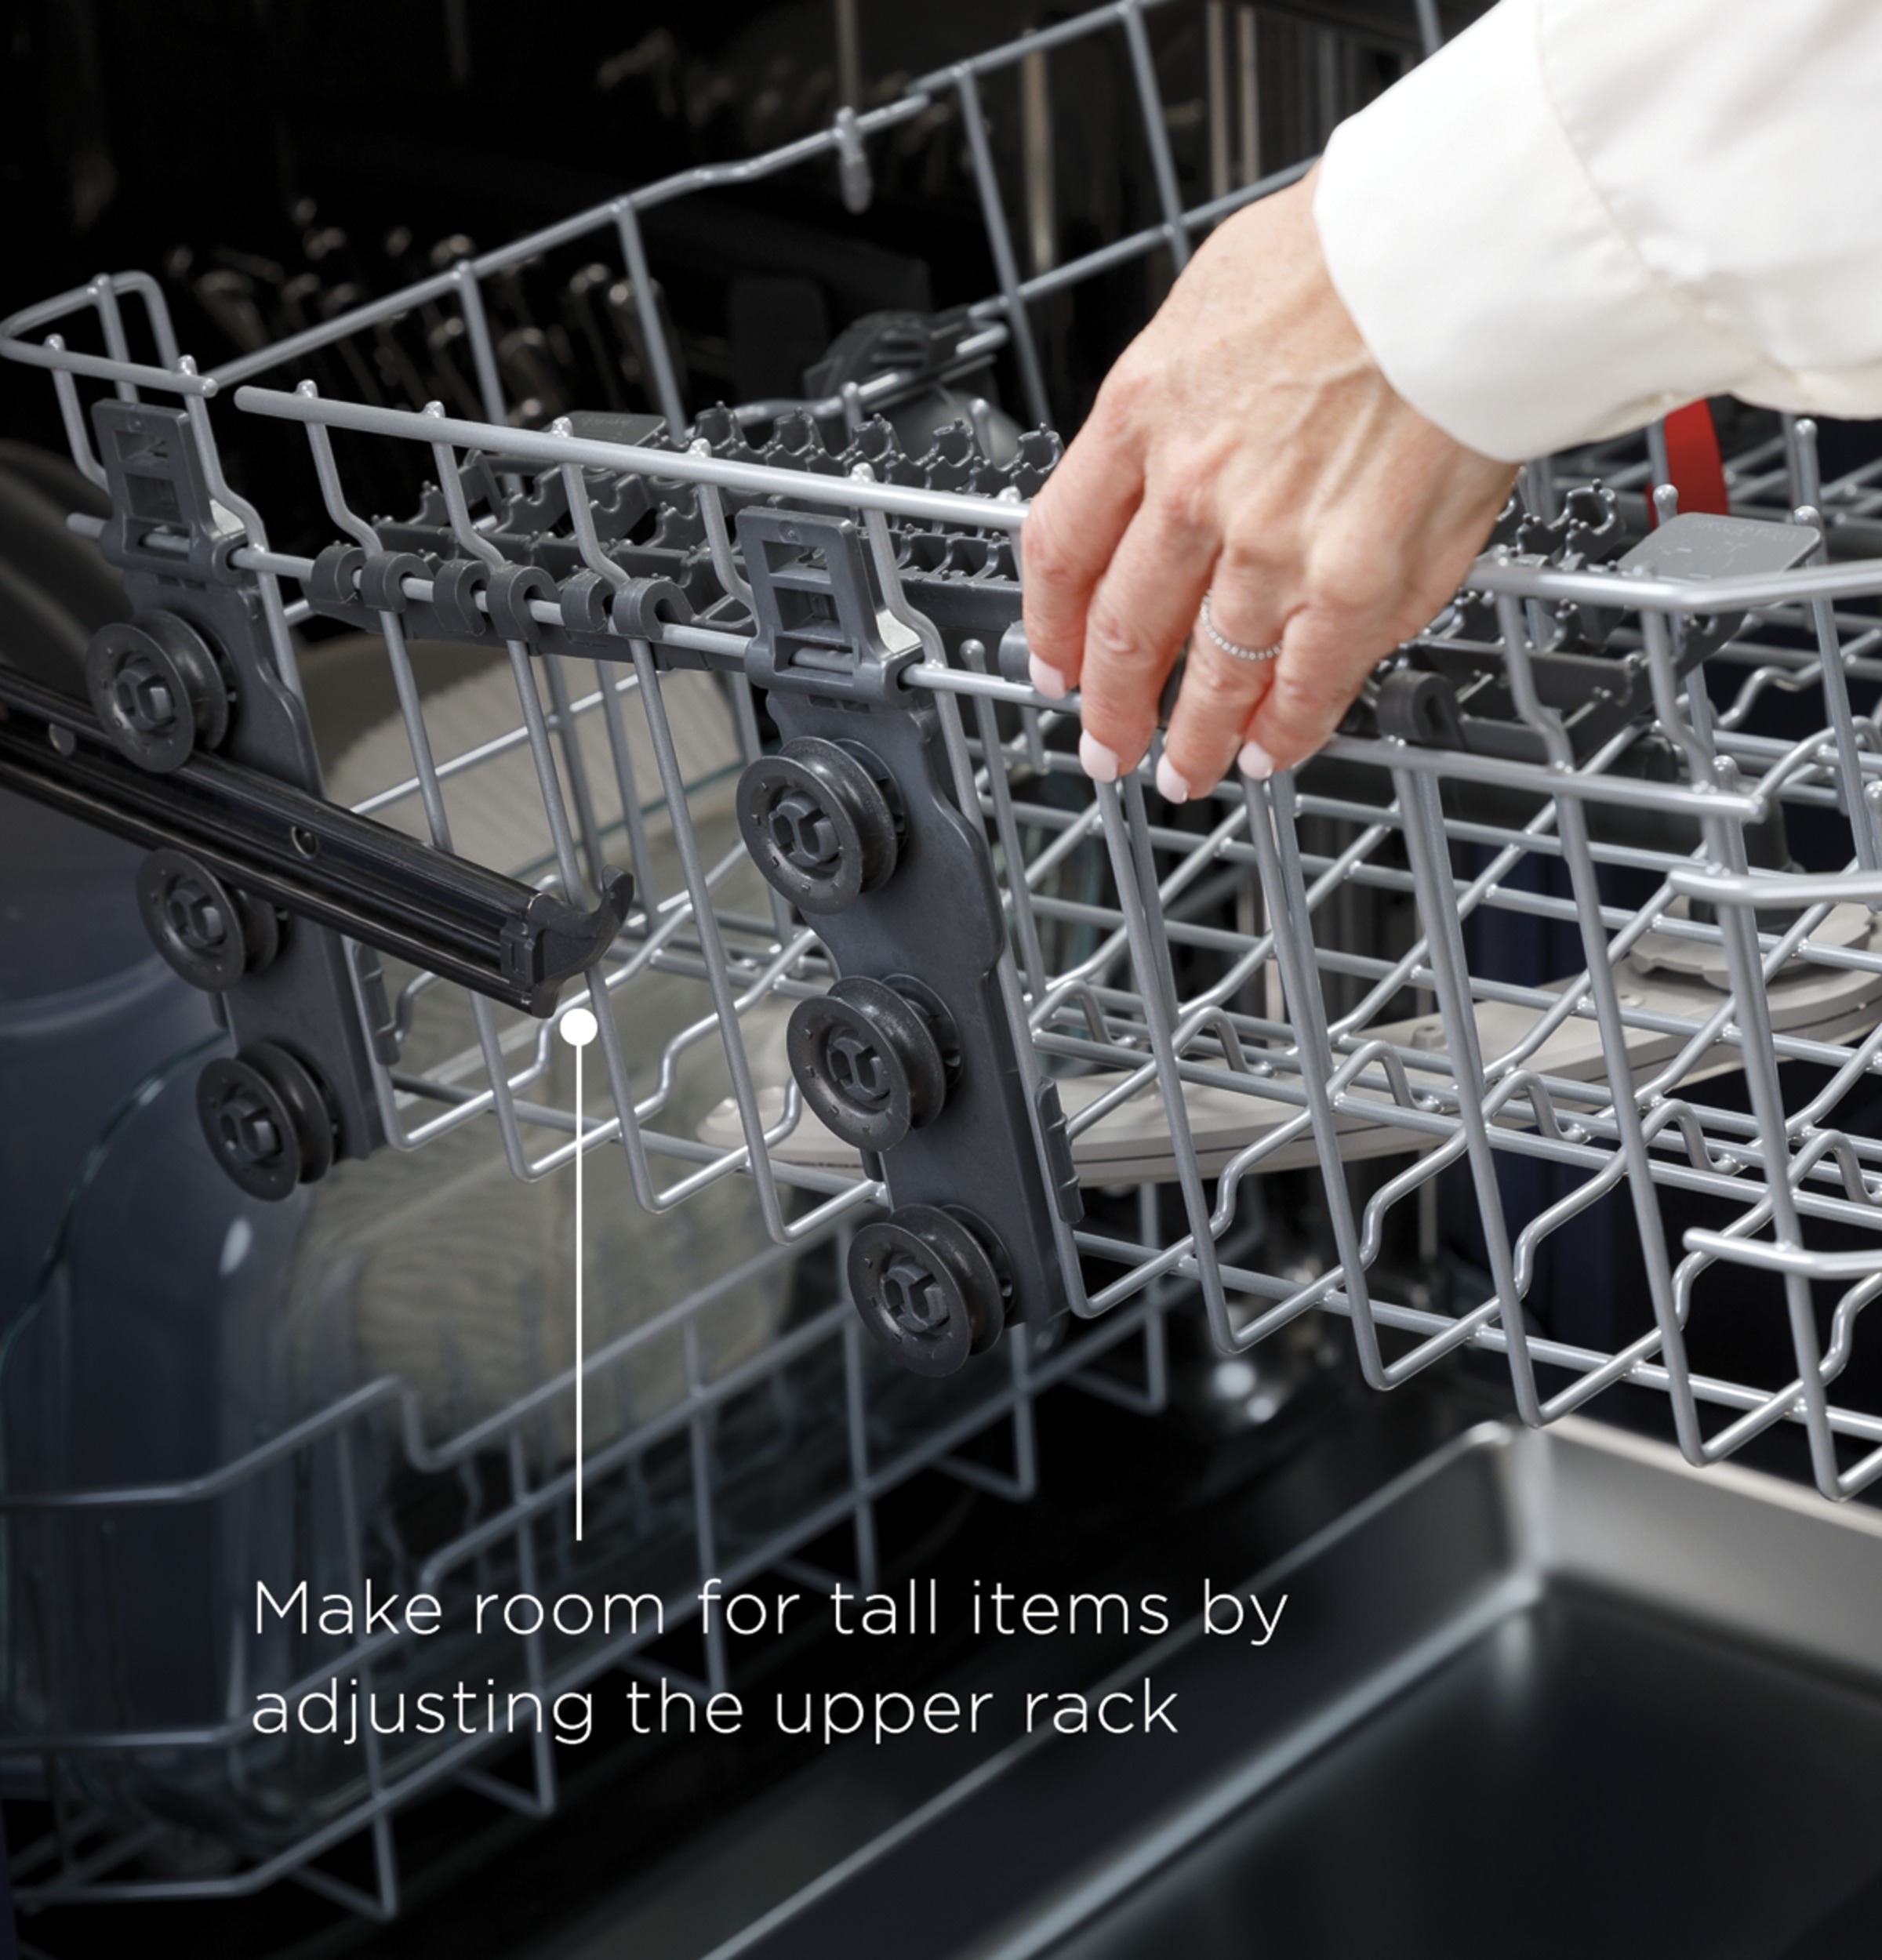 Model: GDF645SSNSS | GE GE® Front Control with Stainless Steel Interior Dishwasher with Sanitize Cycle & Dry Boost